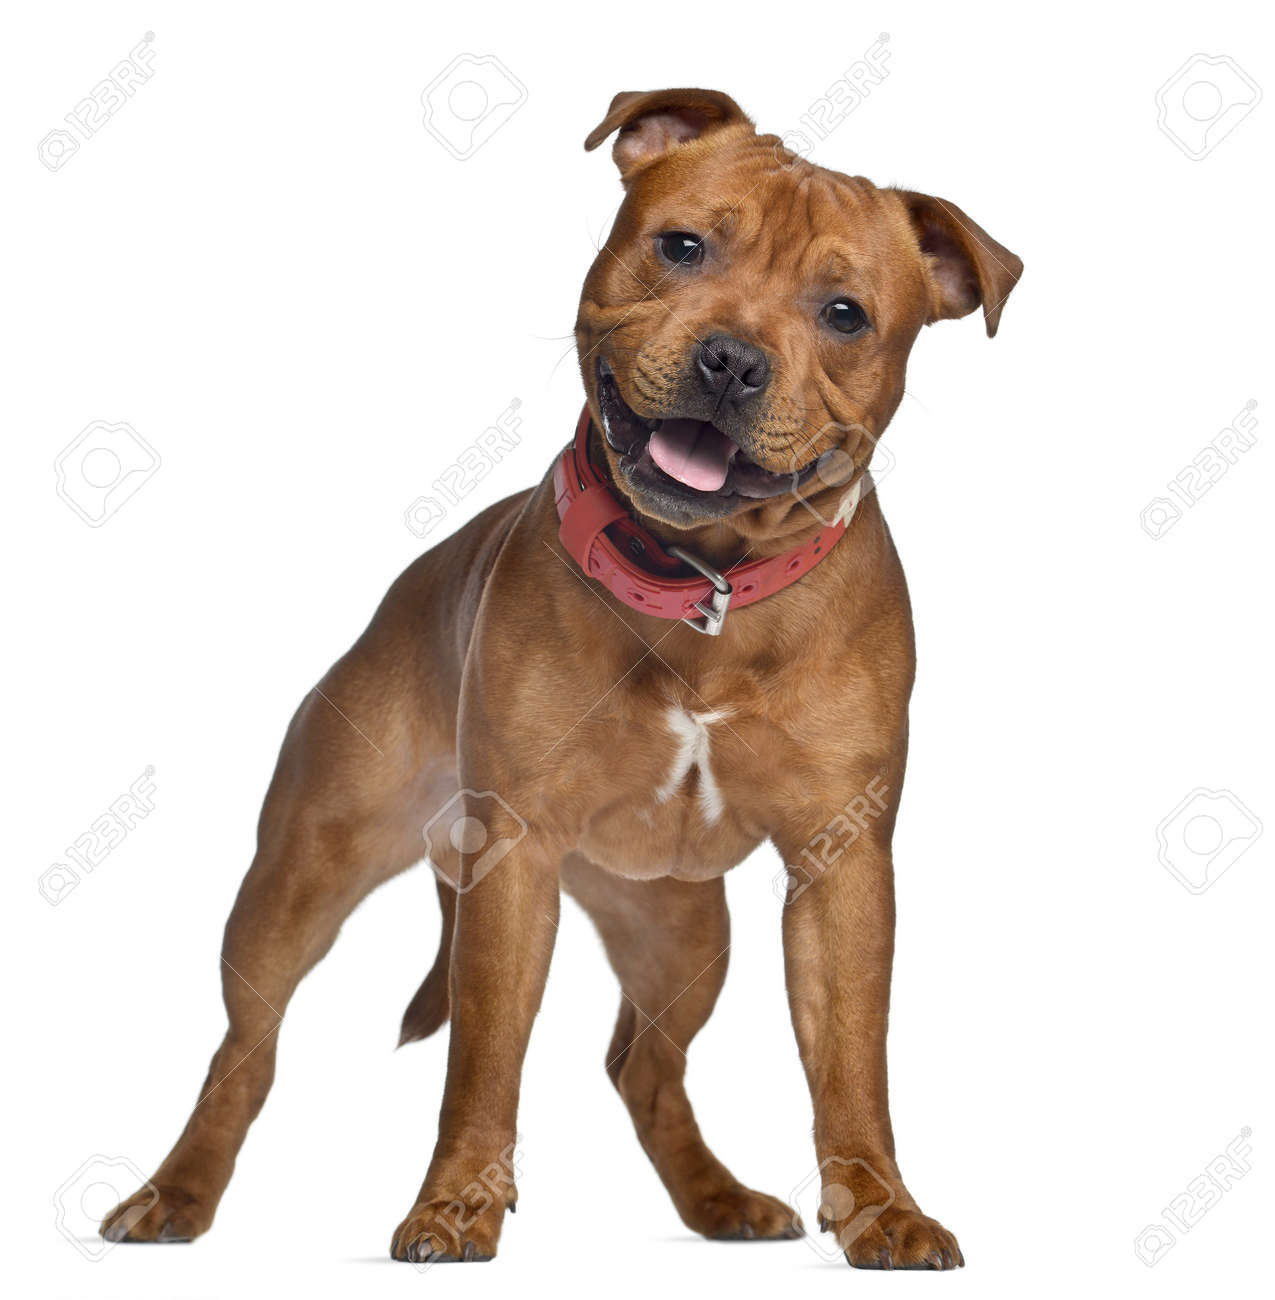 Staffordshire Bull Terrier, 9 months old with red collar, standing,  isolated on white